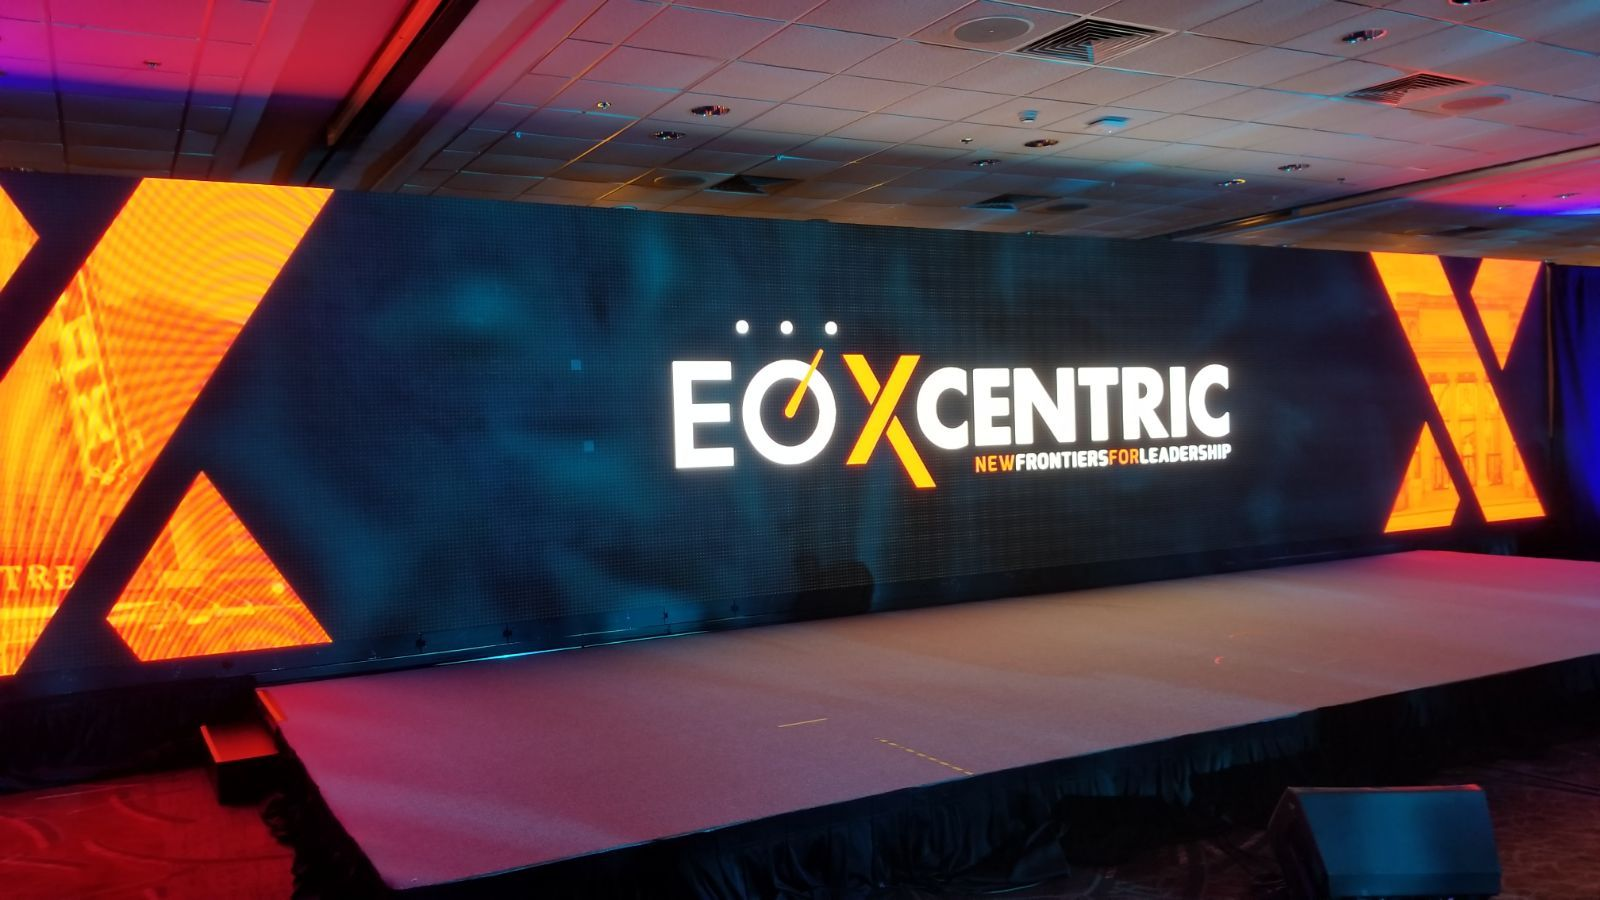 LED Video Wall at EO XCentric Conference